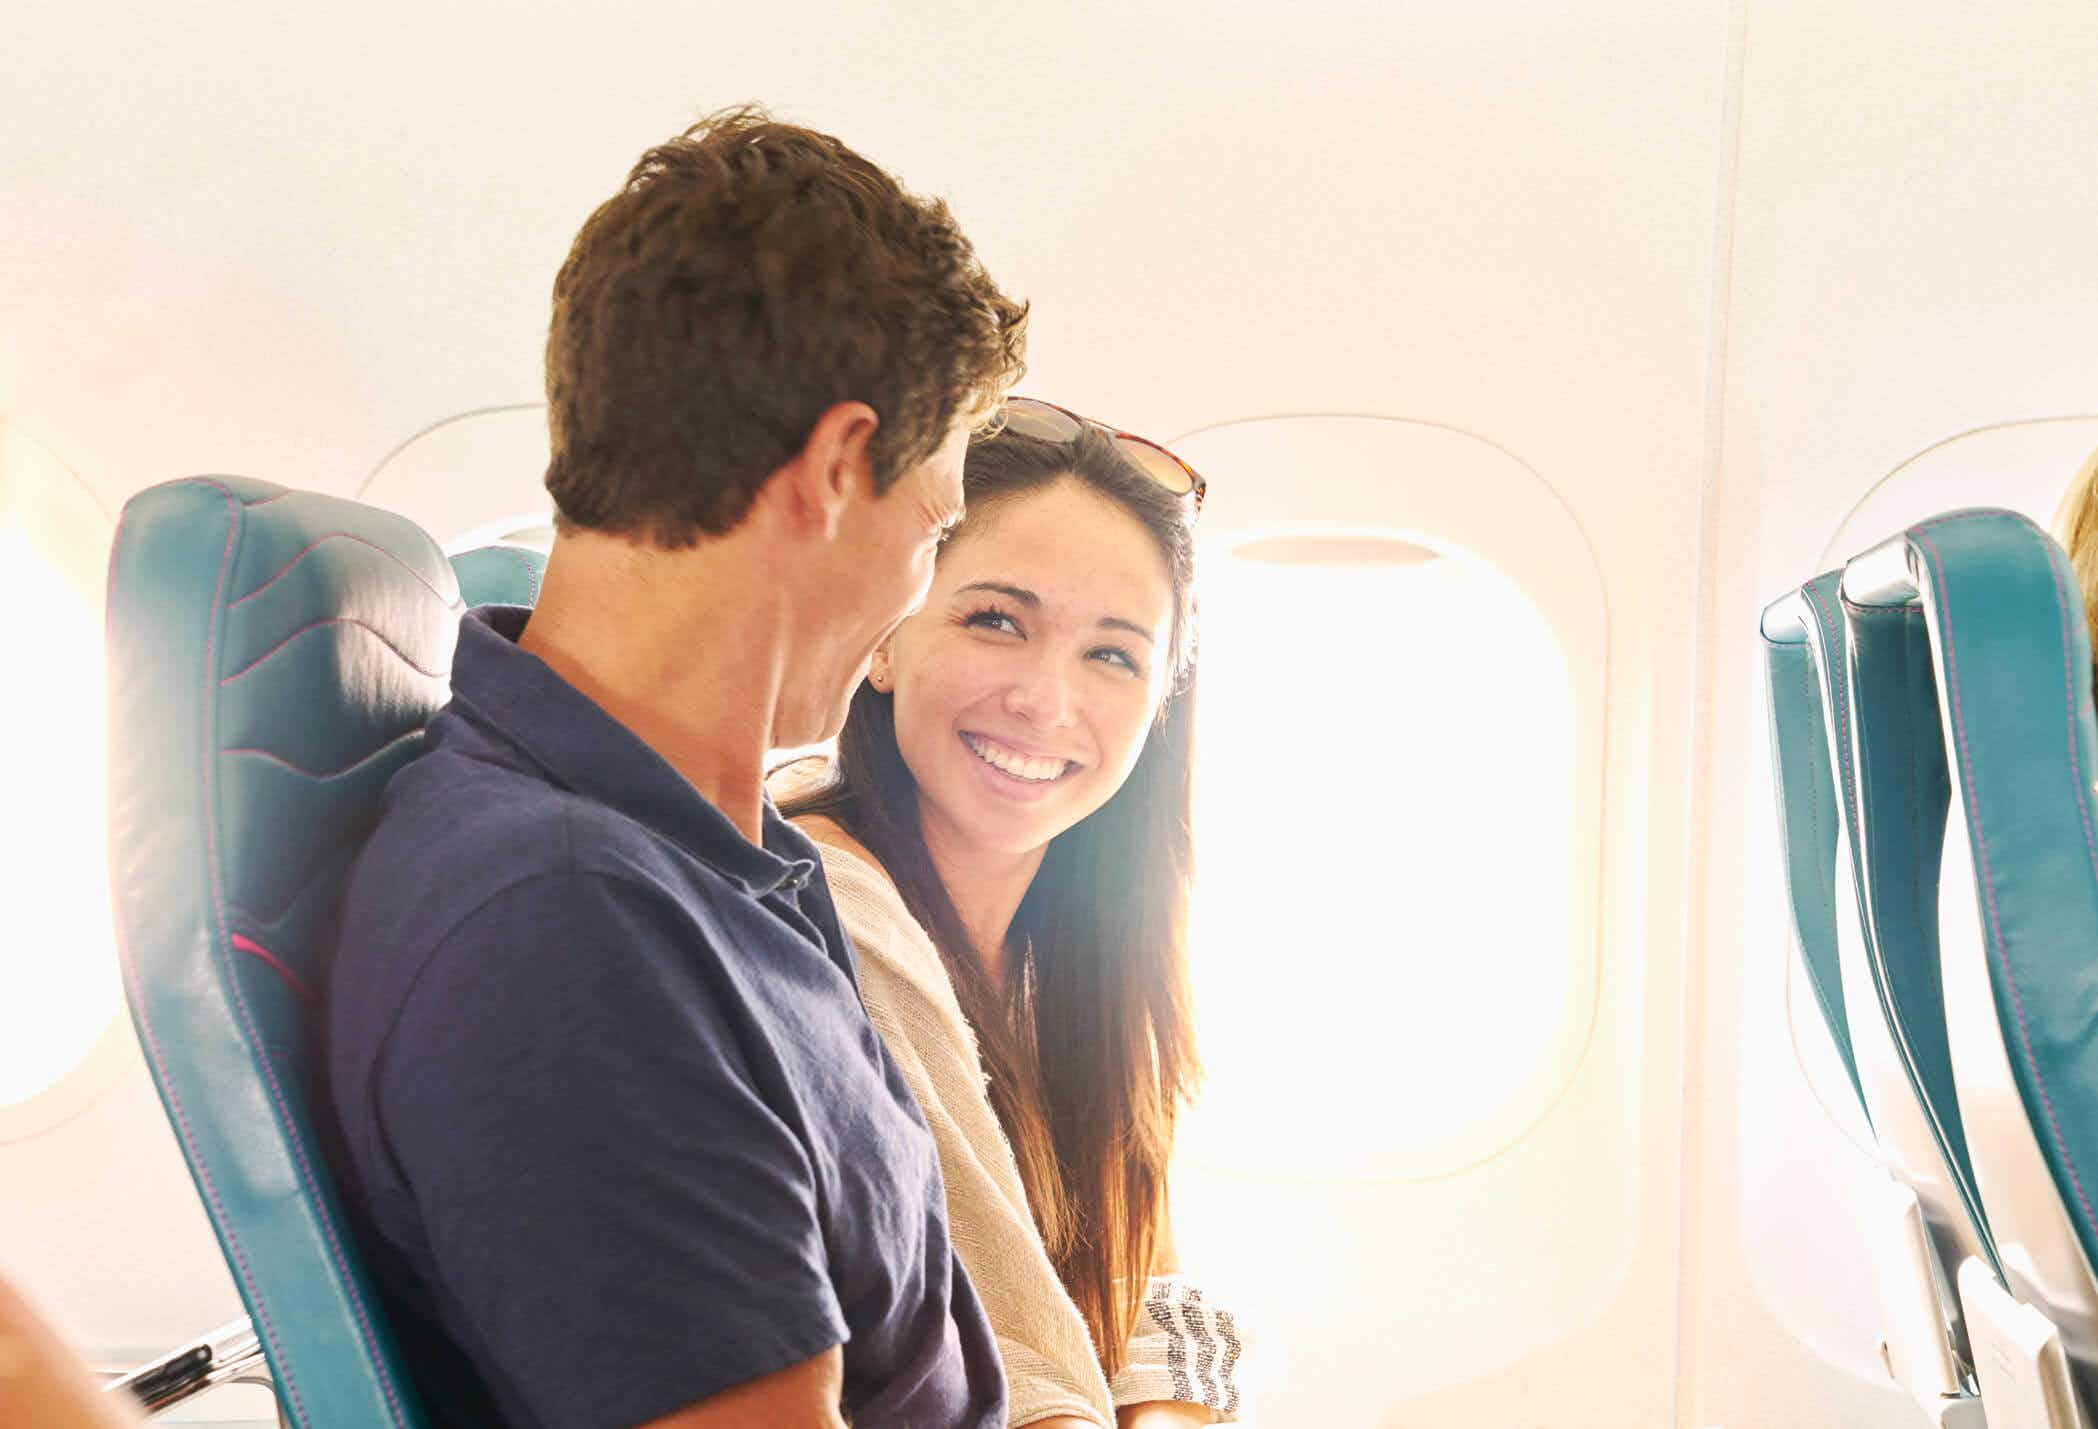 Frequent fliers could fall in love on a flight with this new app